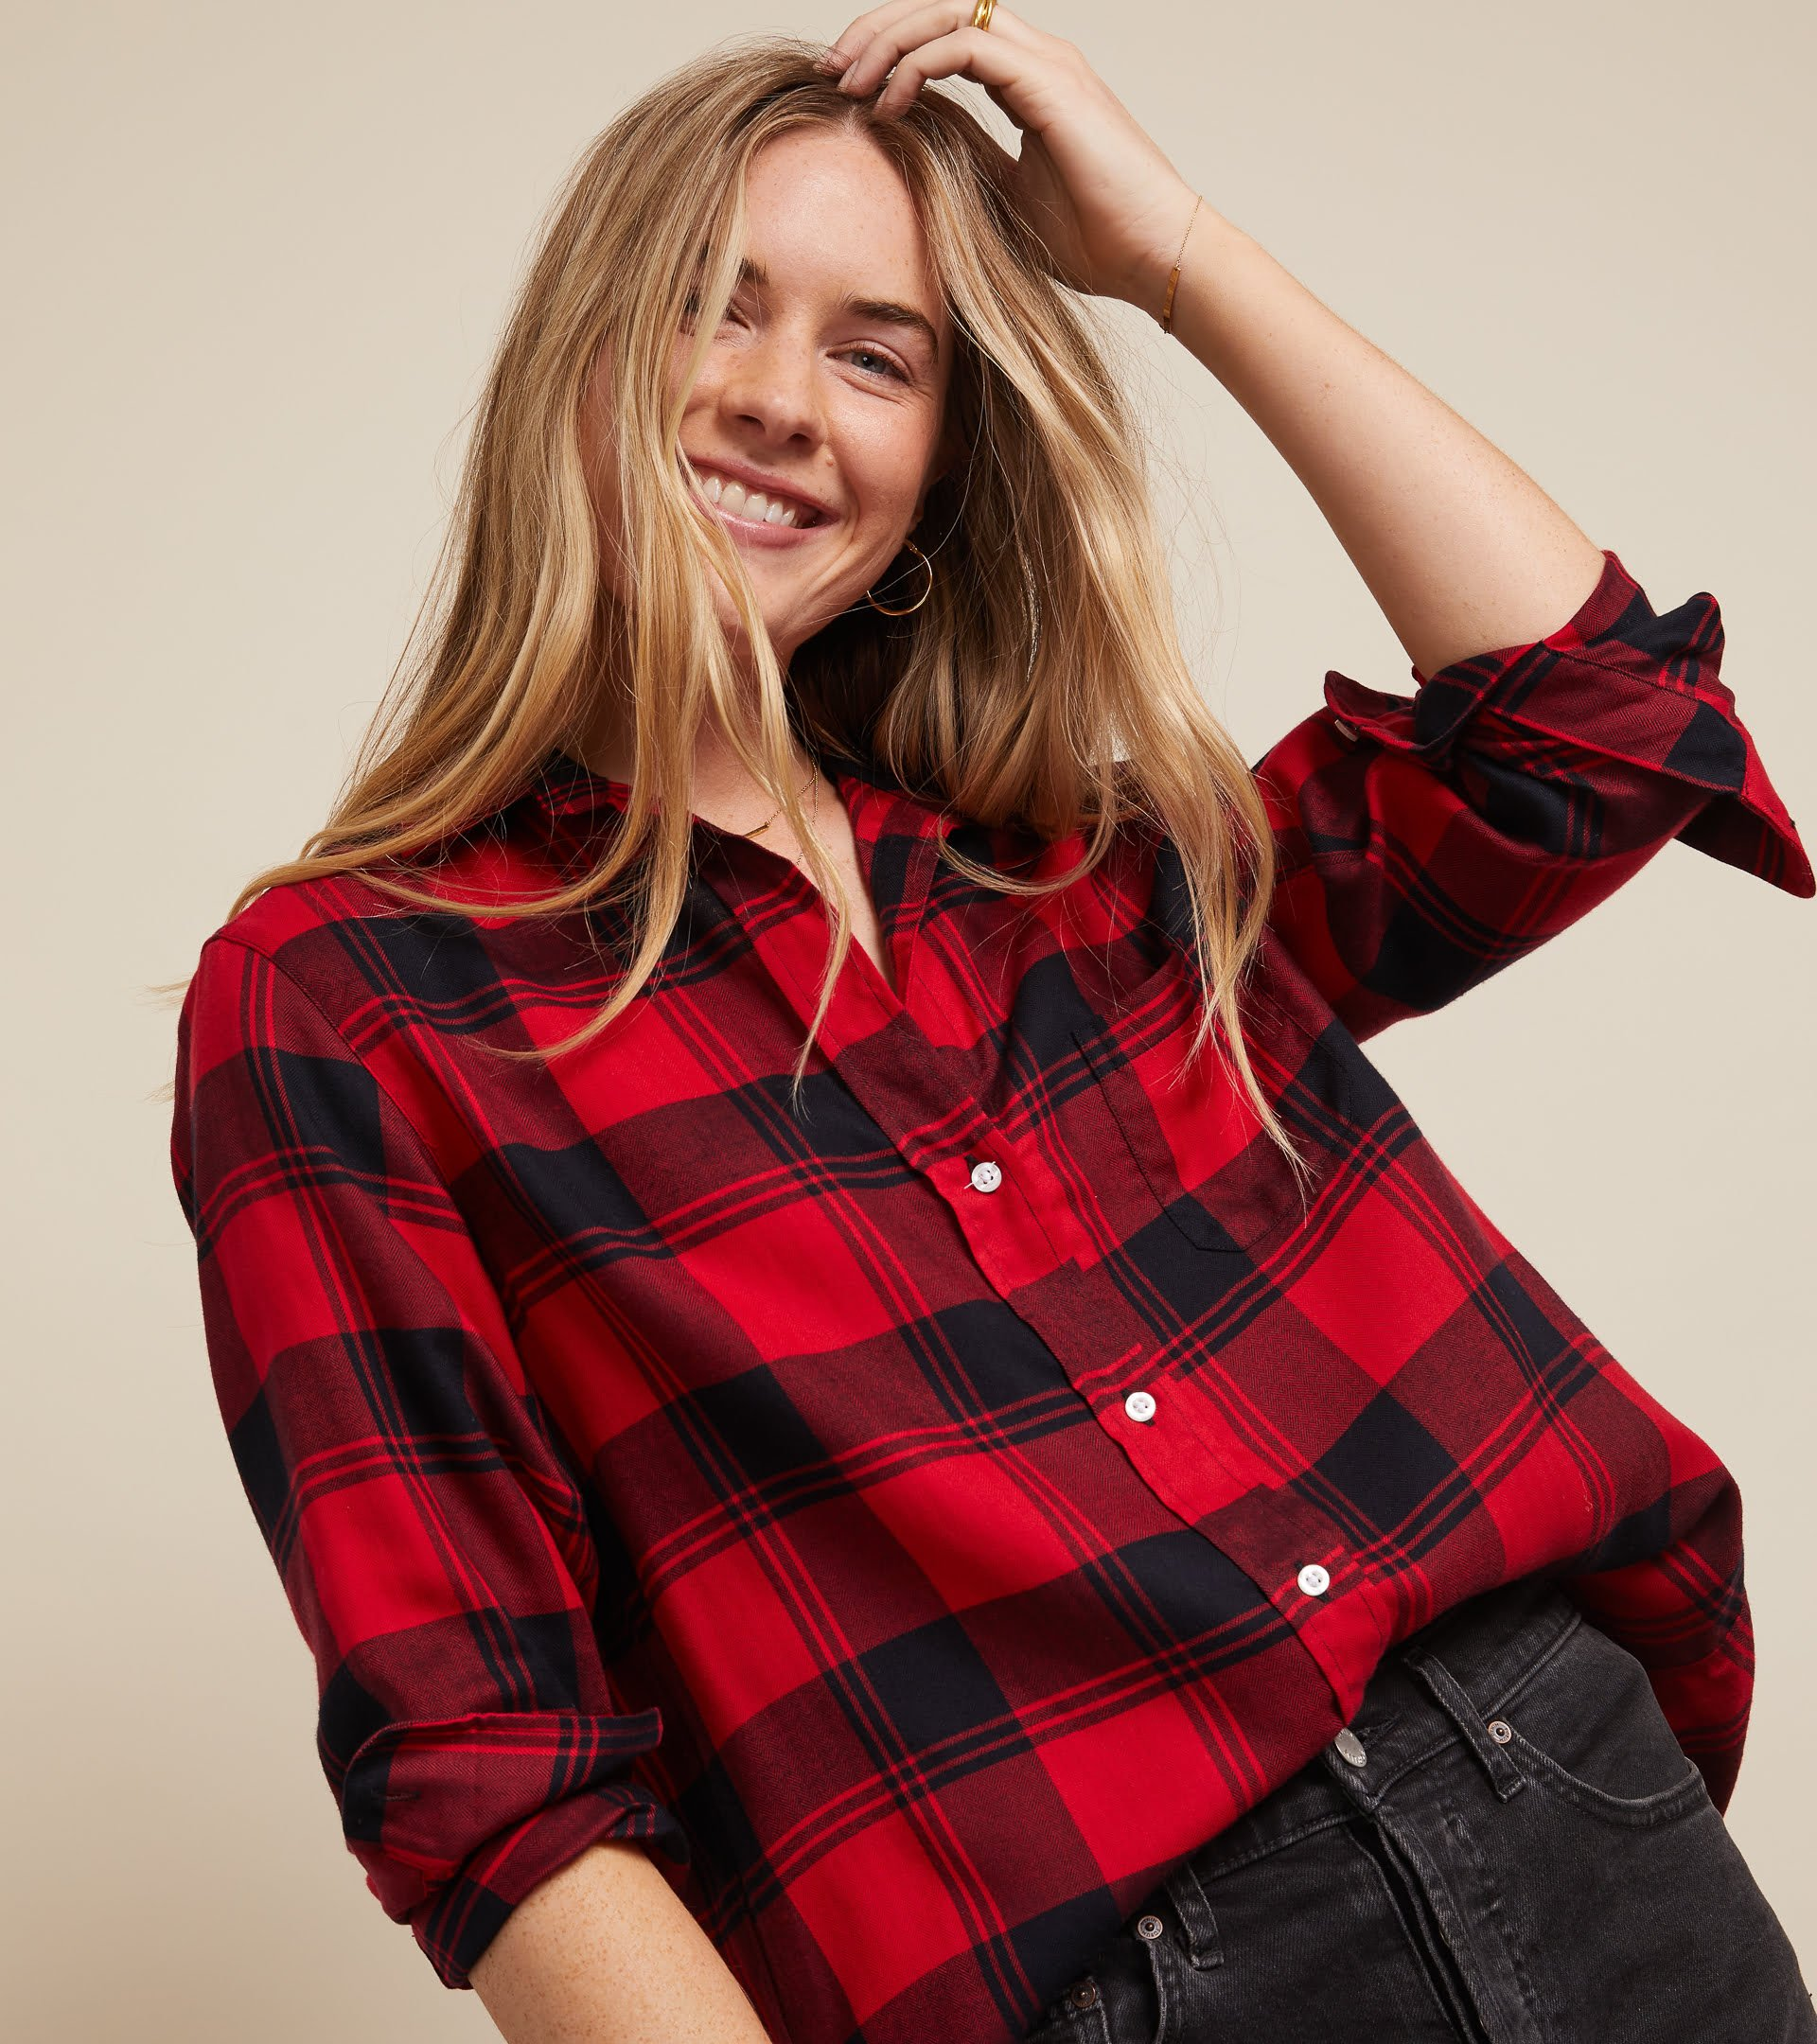 The Hero Button-Up Shirt Red and Black Plaid, Liquid Flannel view 1